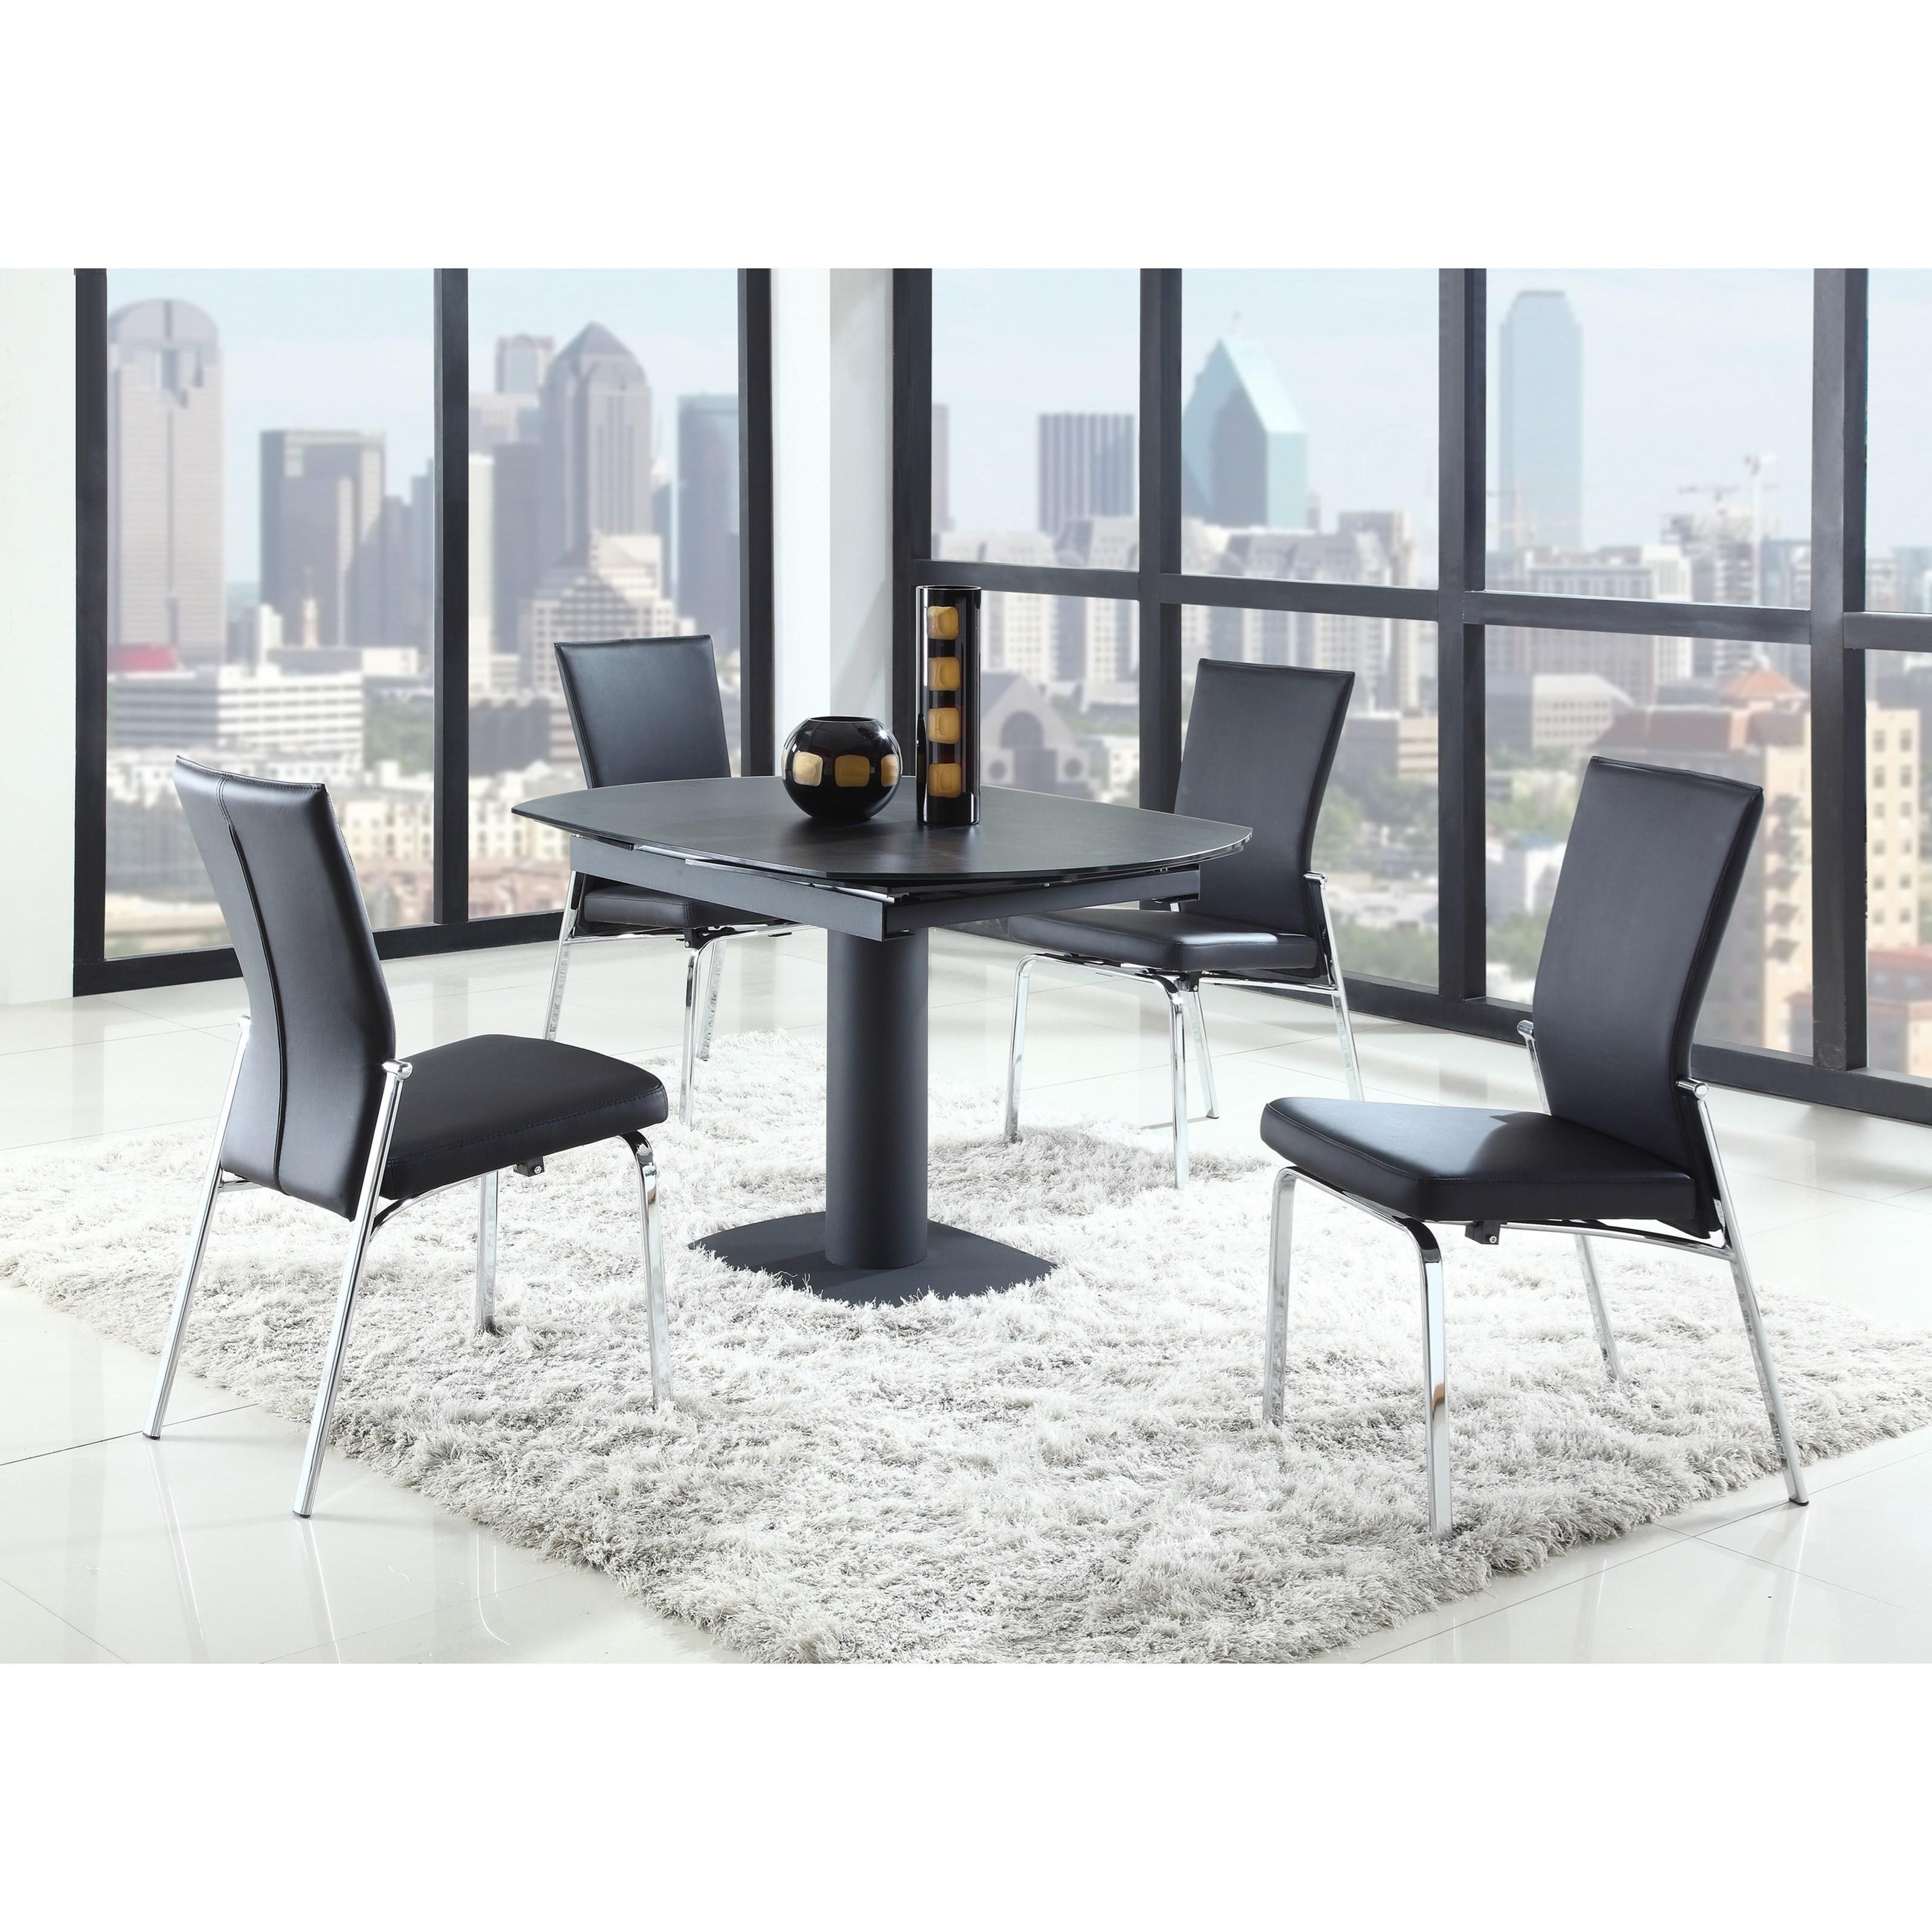 Imported Furniture Online: Chintaly Imports Grace GRACE-DT-BLK Dining Table With